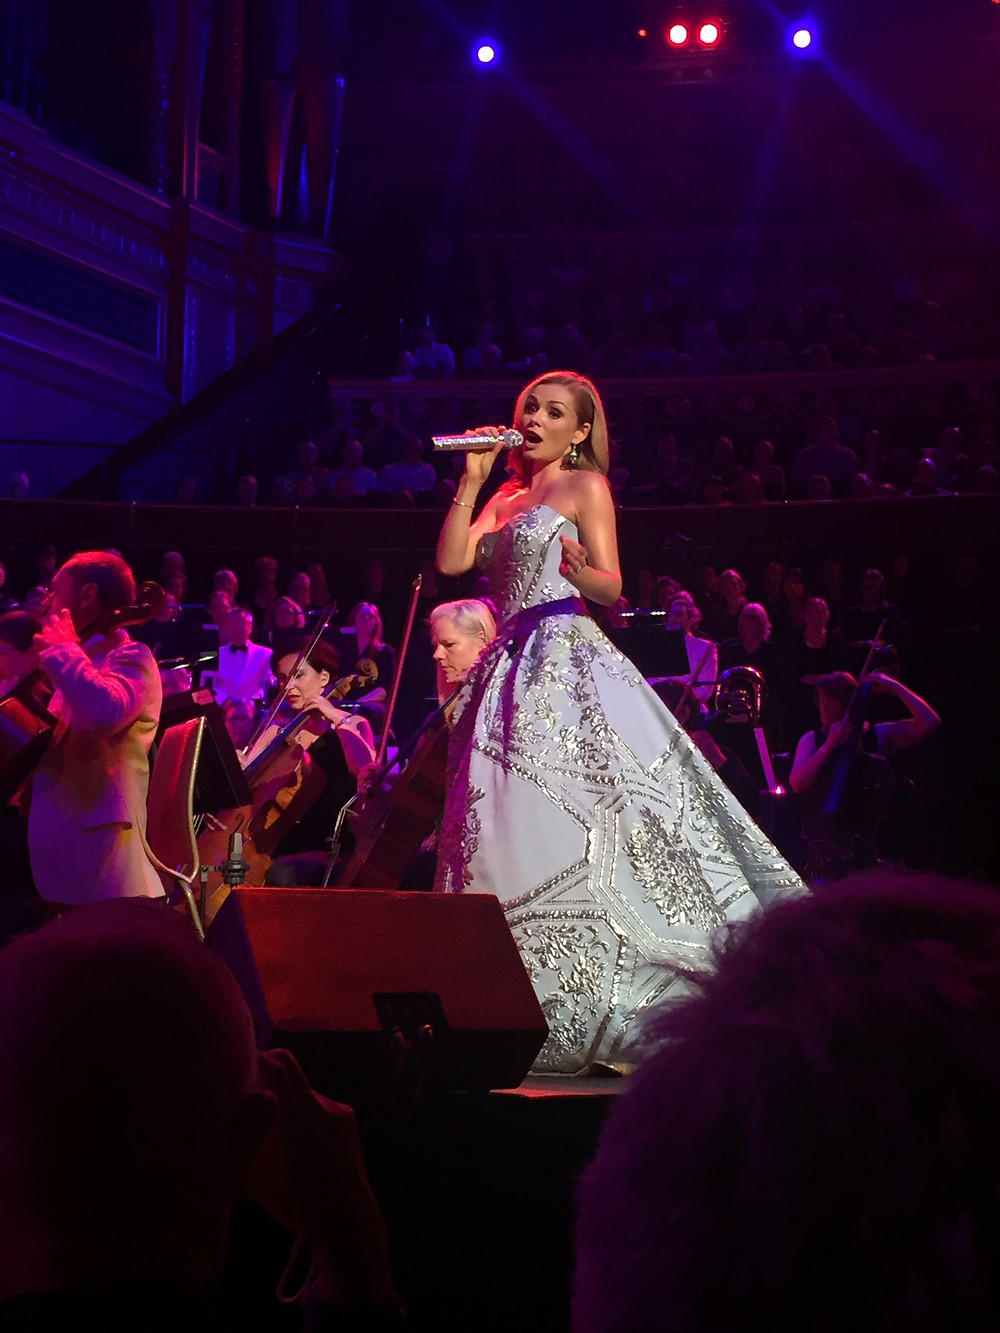 On that 18th of June, My daughter and I went to watch Katherine Jenkins at the Royal Albert Hall. It was such a beautiful night that I quickly bought tickets for another concert the next day.